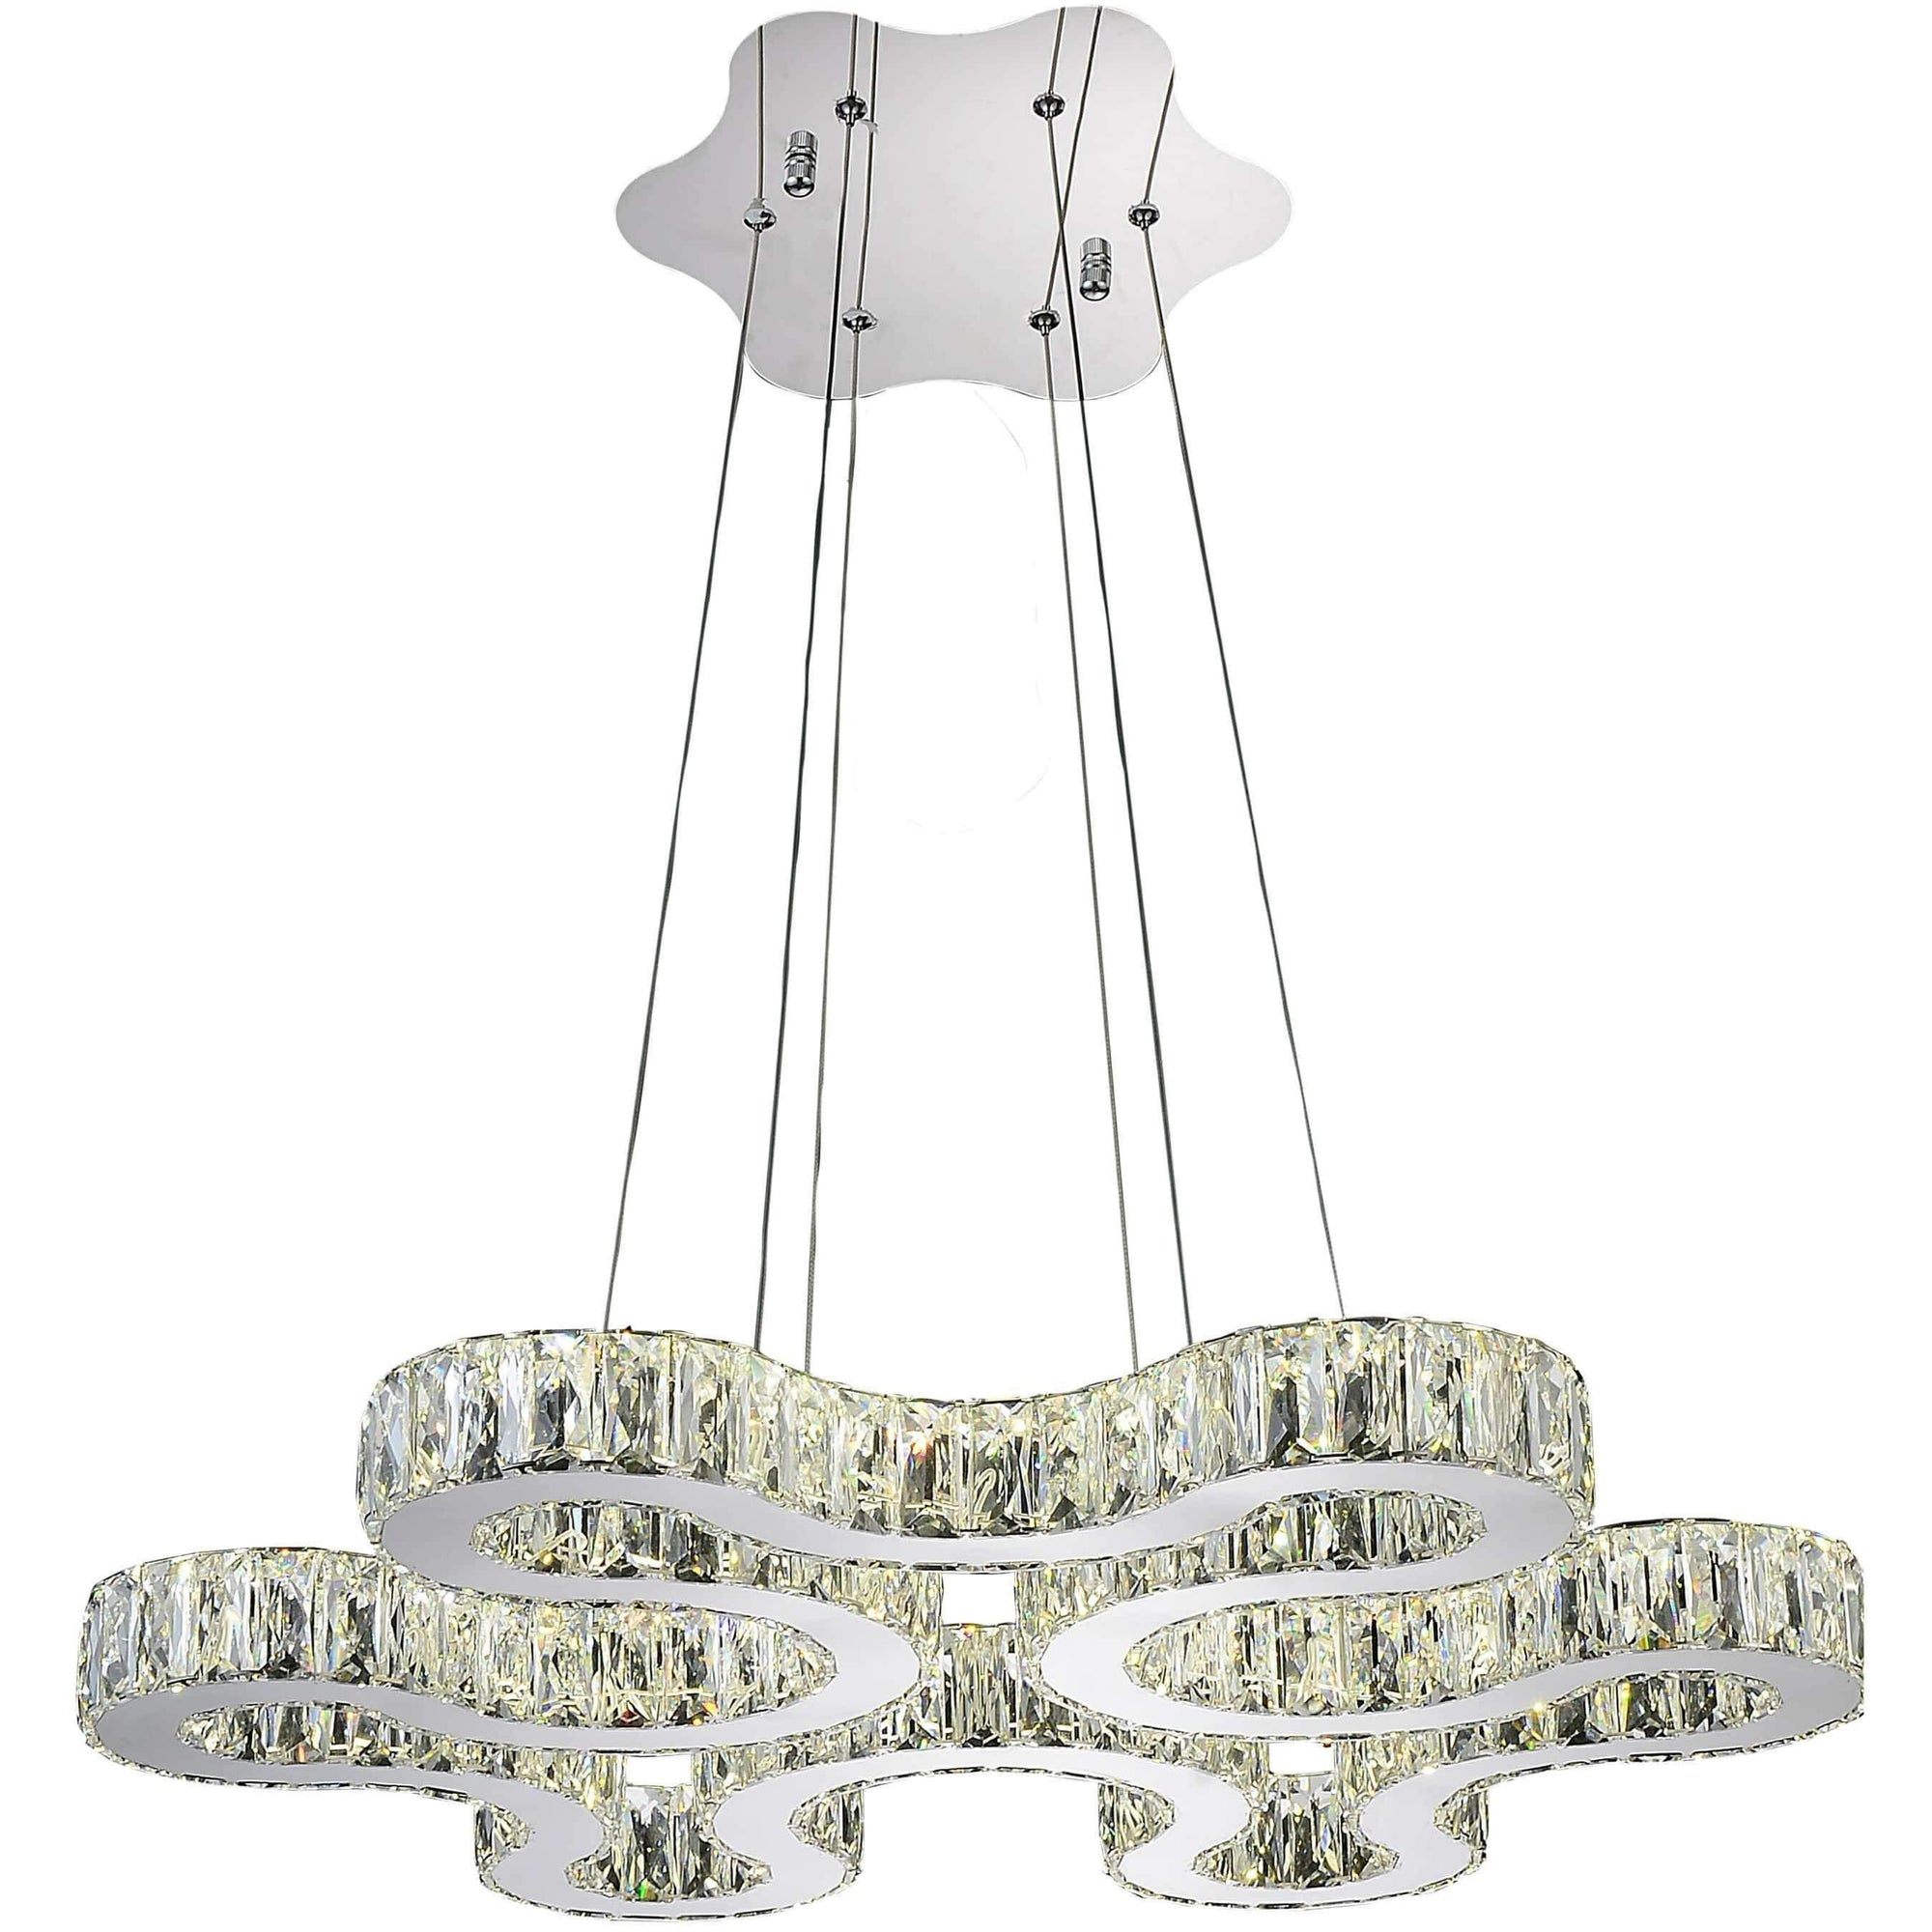 CWI Lighting Chandeliers Chrome / K9 Clear Odessa LED Chandelier with Chrome finish by CWI Lighting 5616P27ST-R